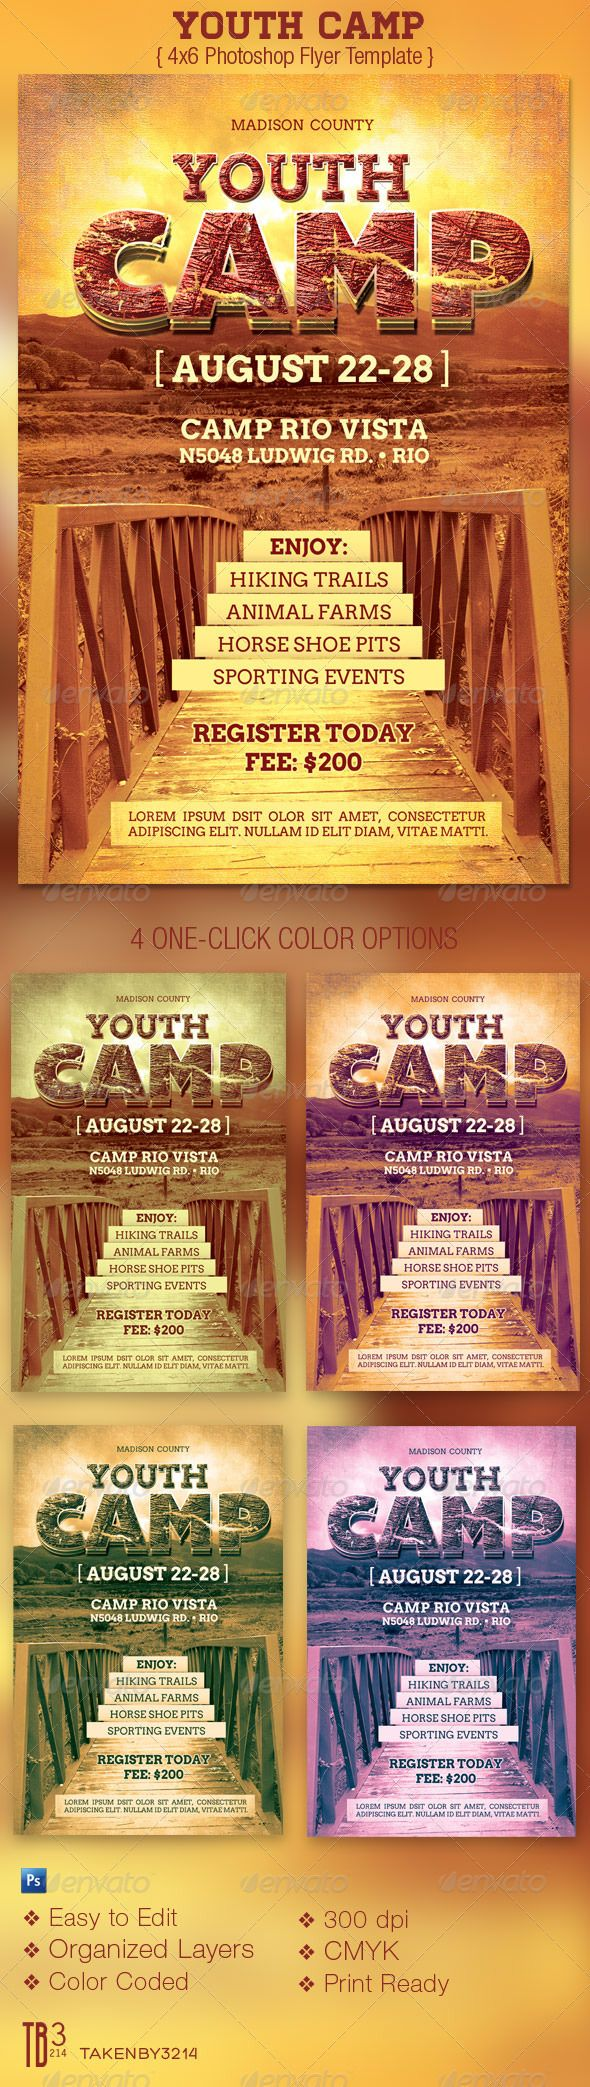 Youth Camp Flyer Template   Campamento